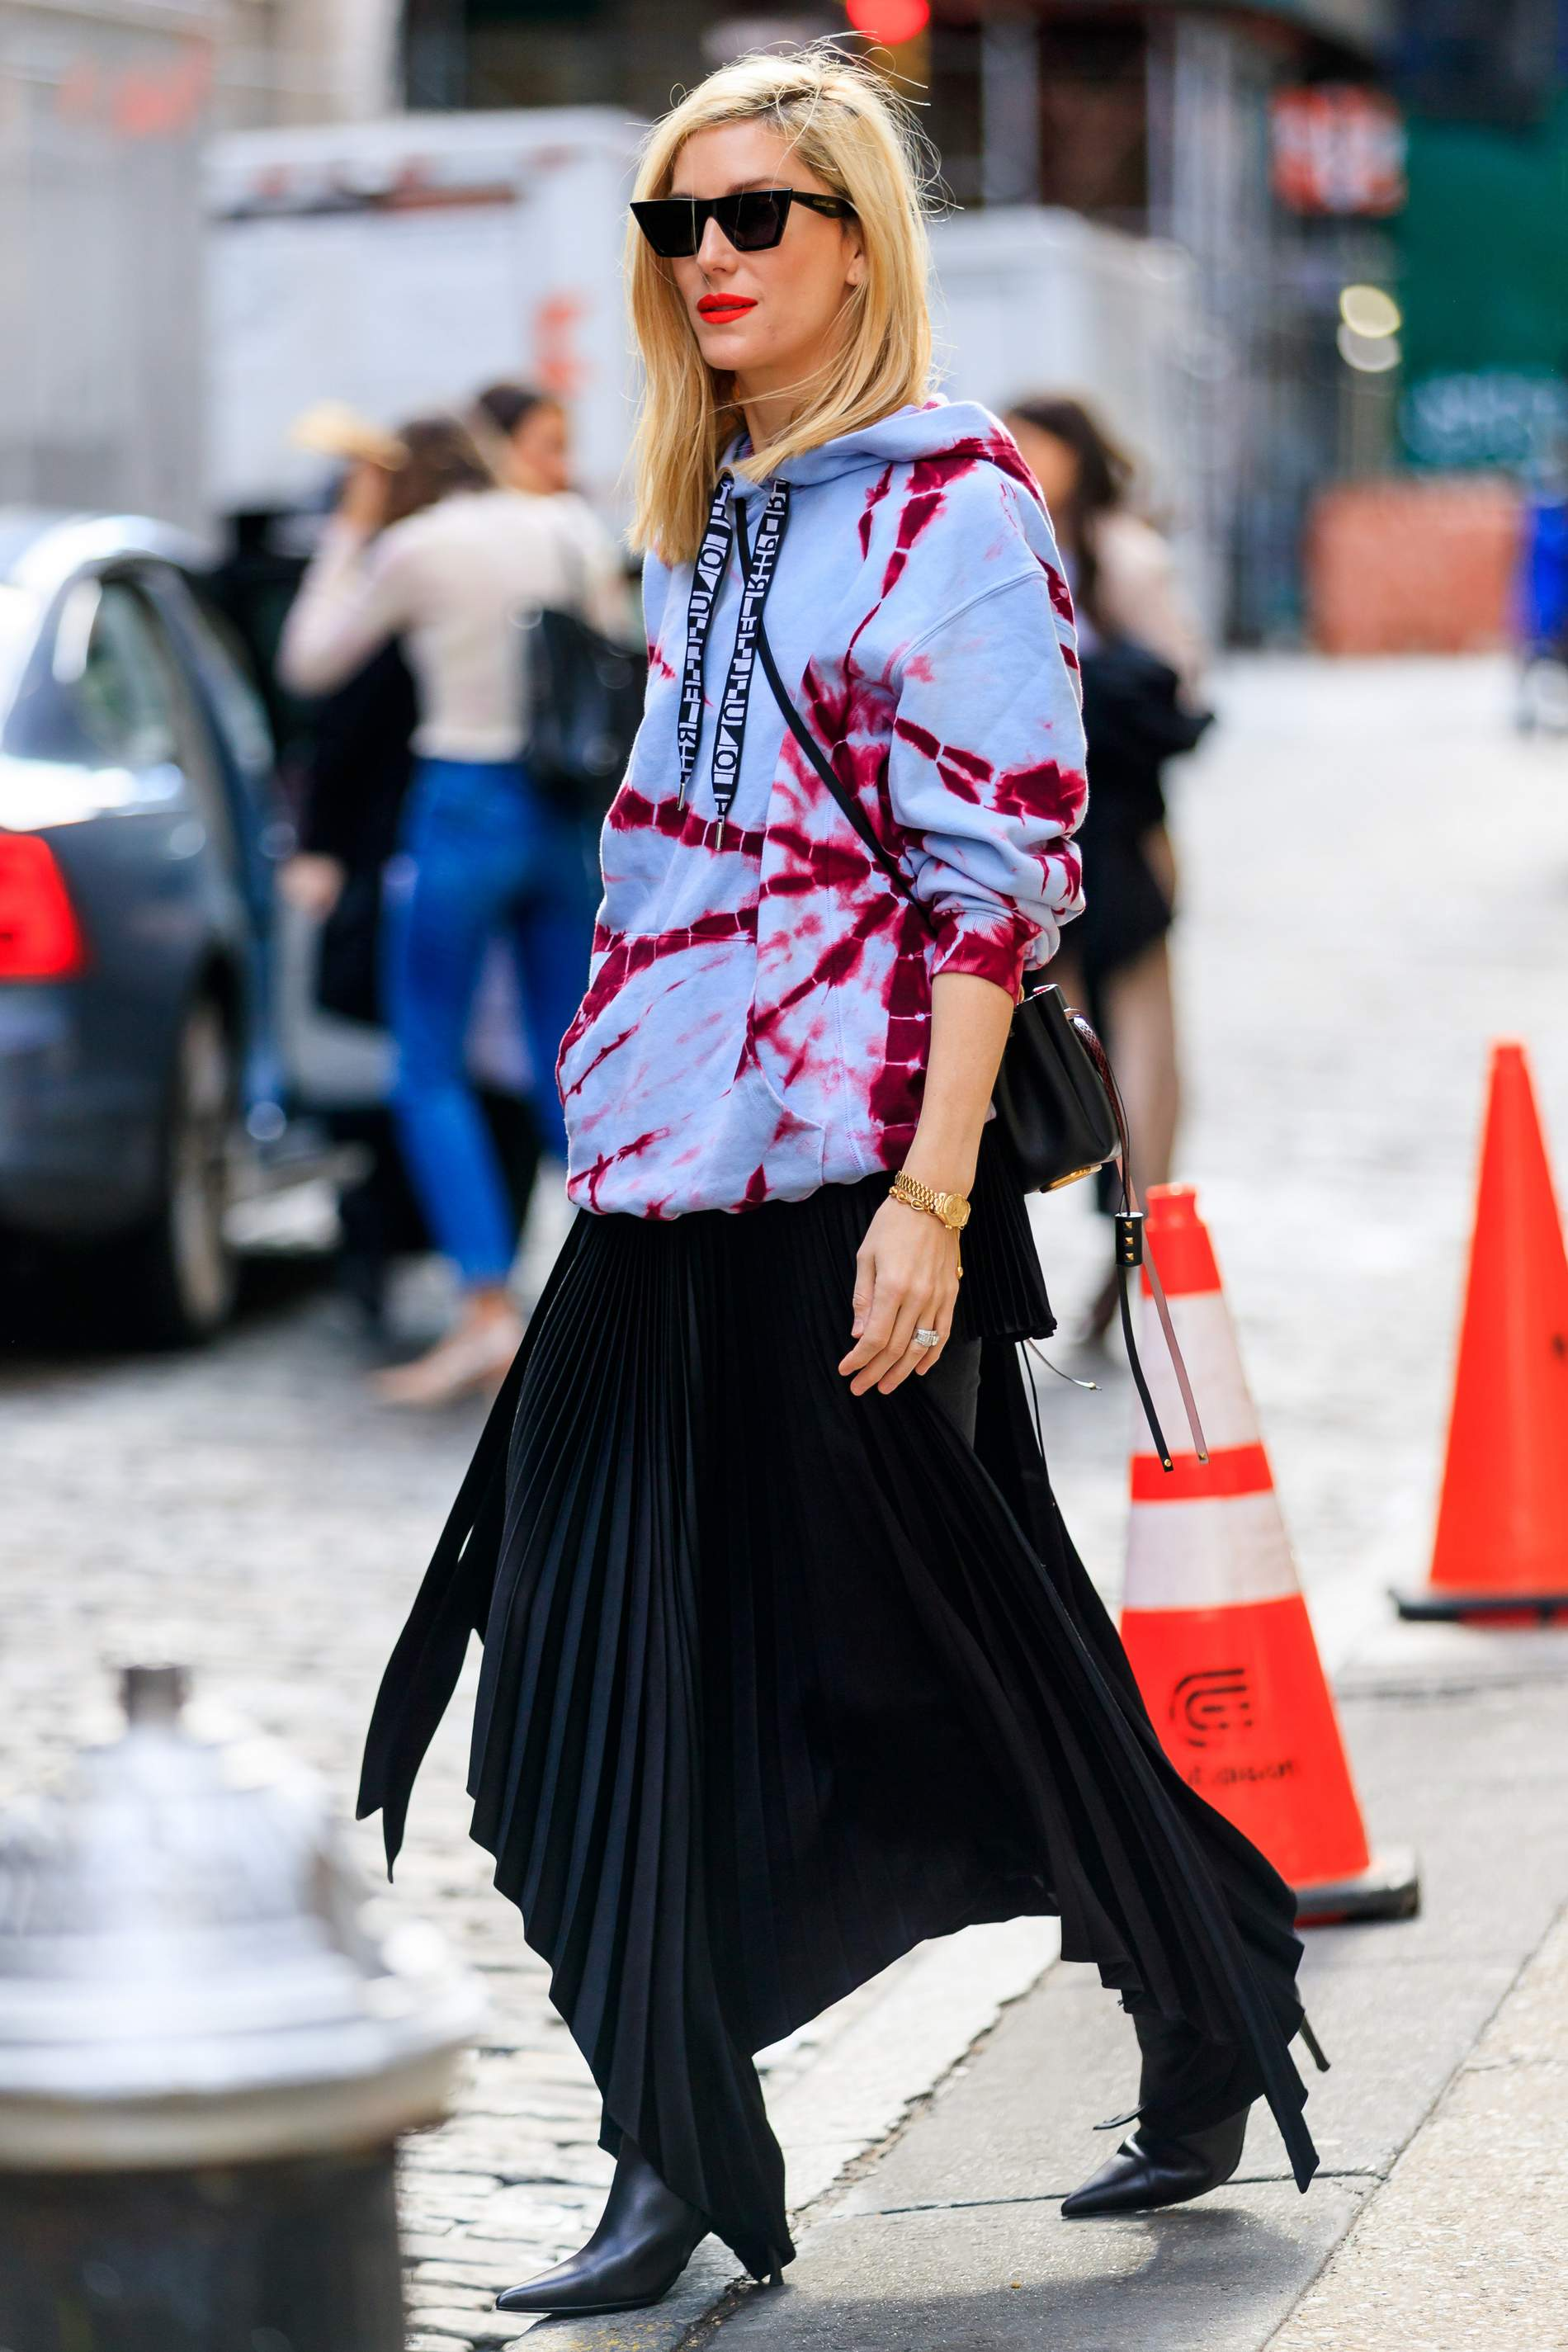 Tie-Dye-Clothes-why-they-are-back-for-2019-Net-a-Porter